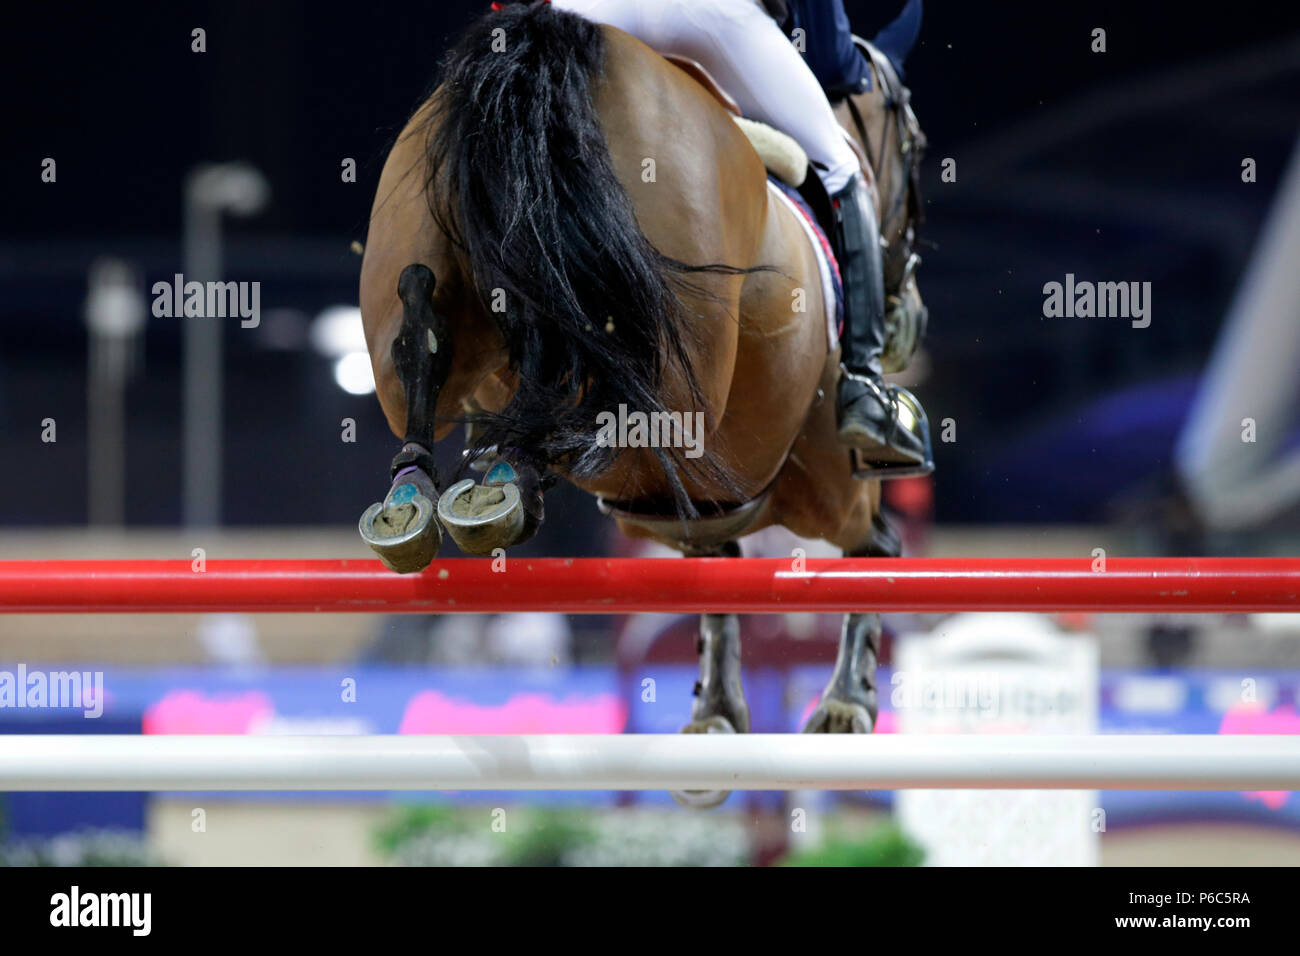 Jumping Horse High Resolution Stock Photography And Images Alamy